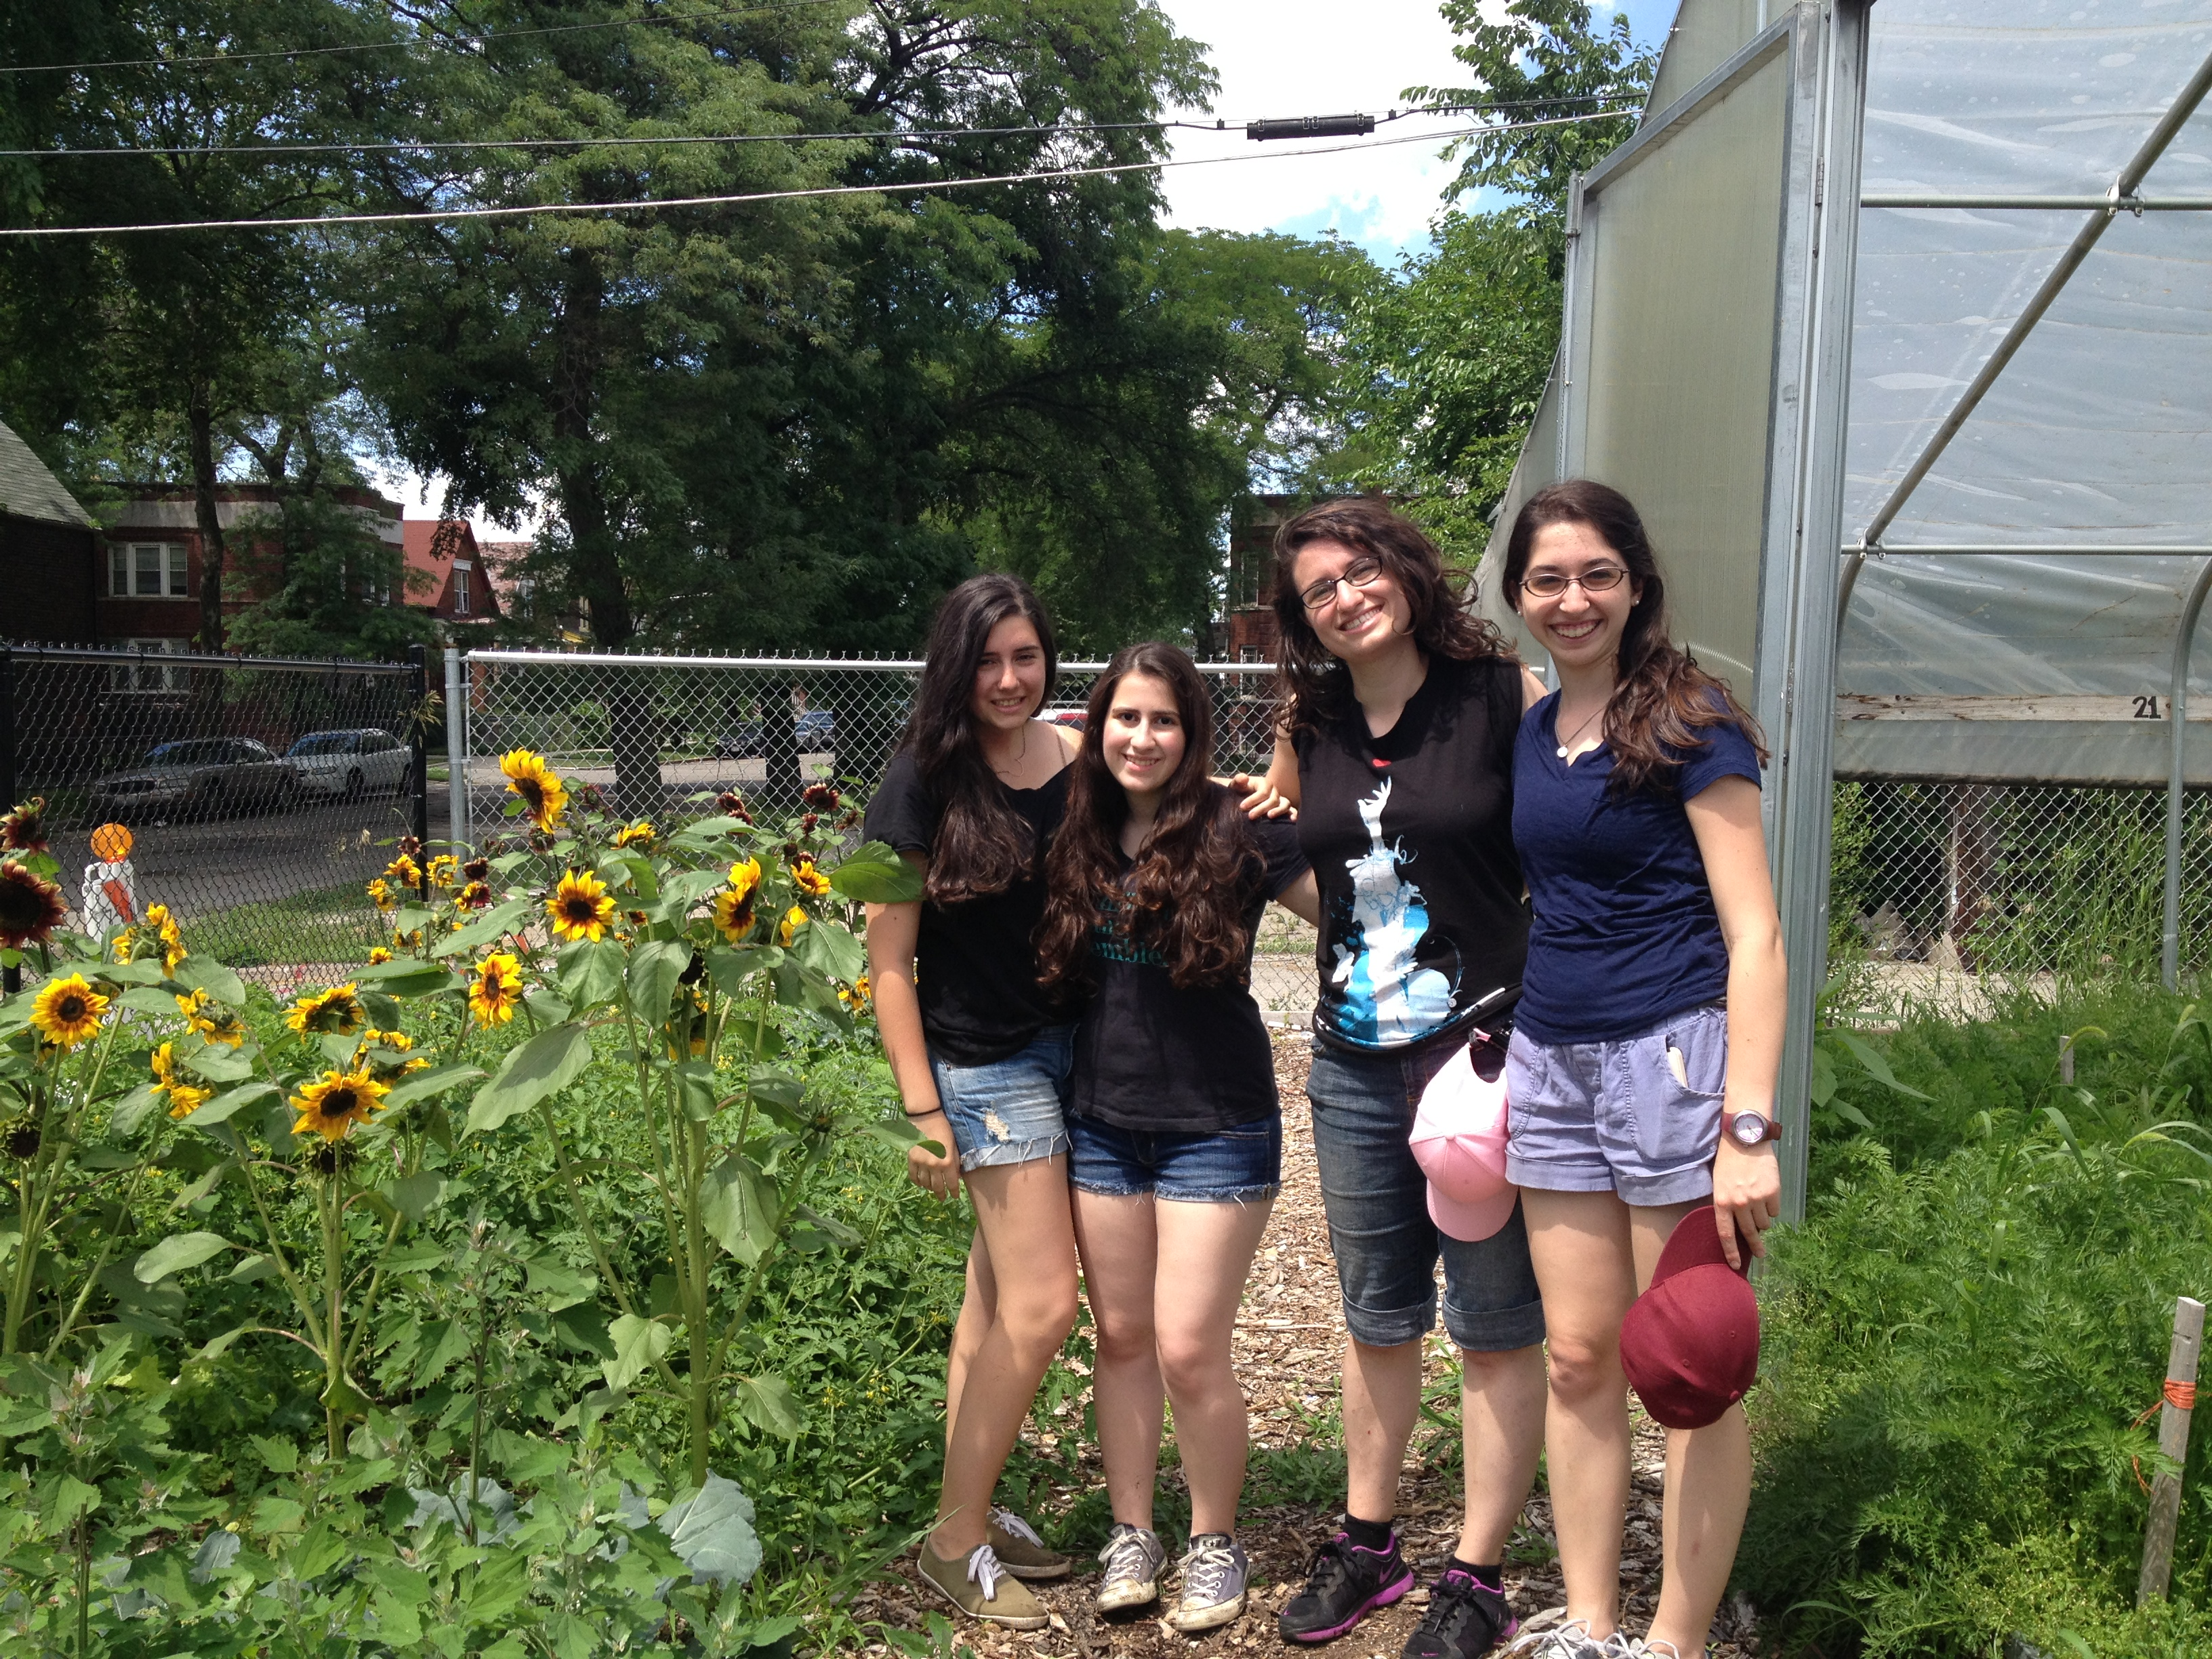 urban agriculture essay City dwellers cultivate and provide fresh, organic produce to neighbors, friends and customers.